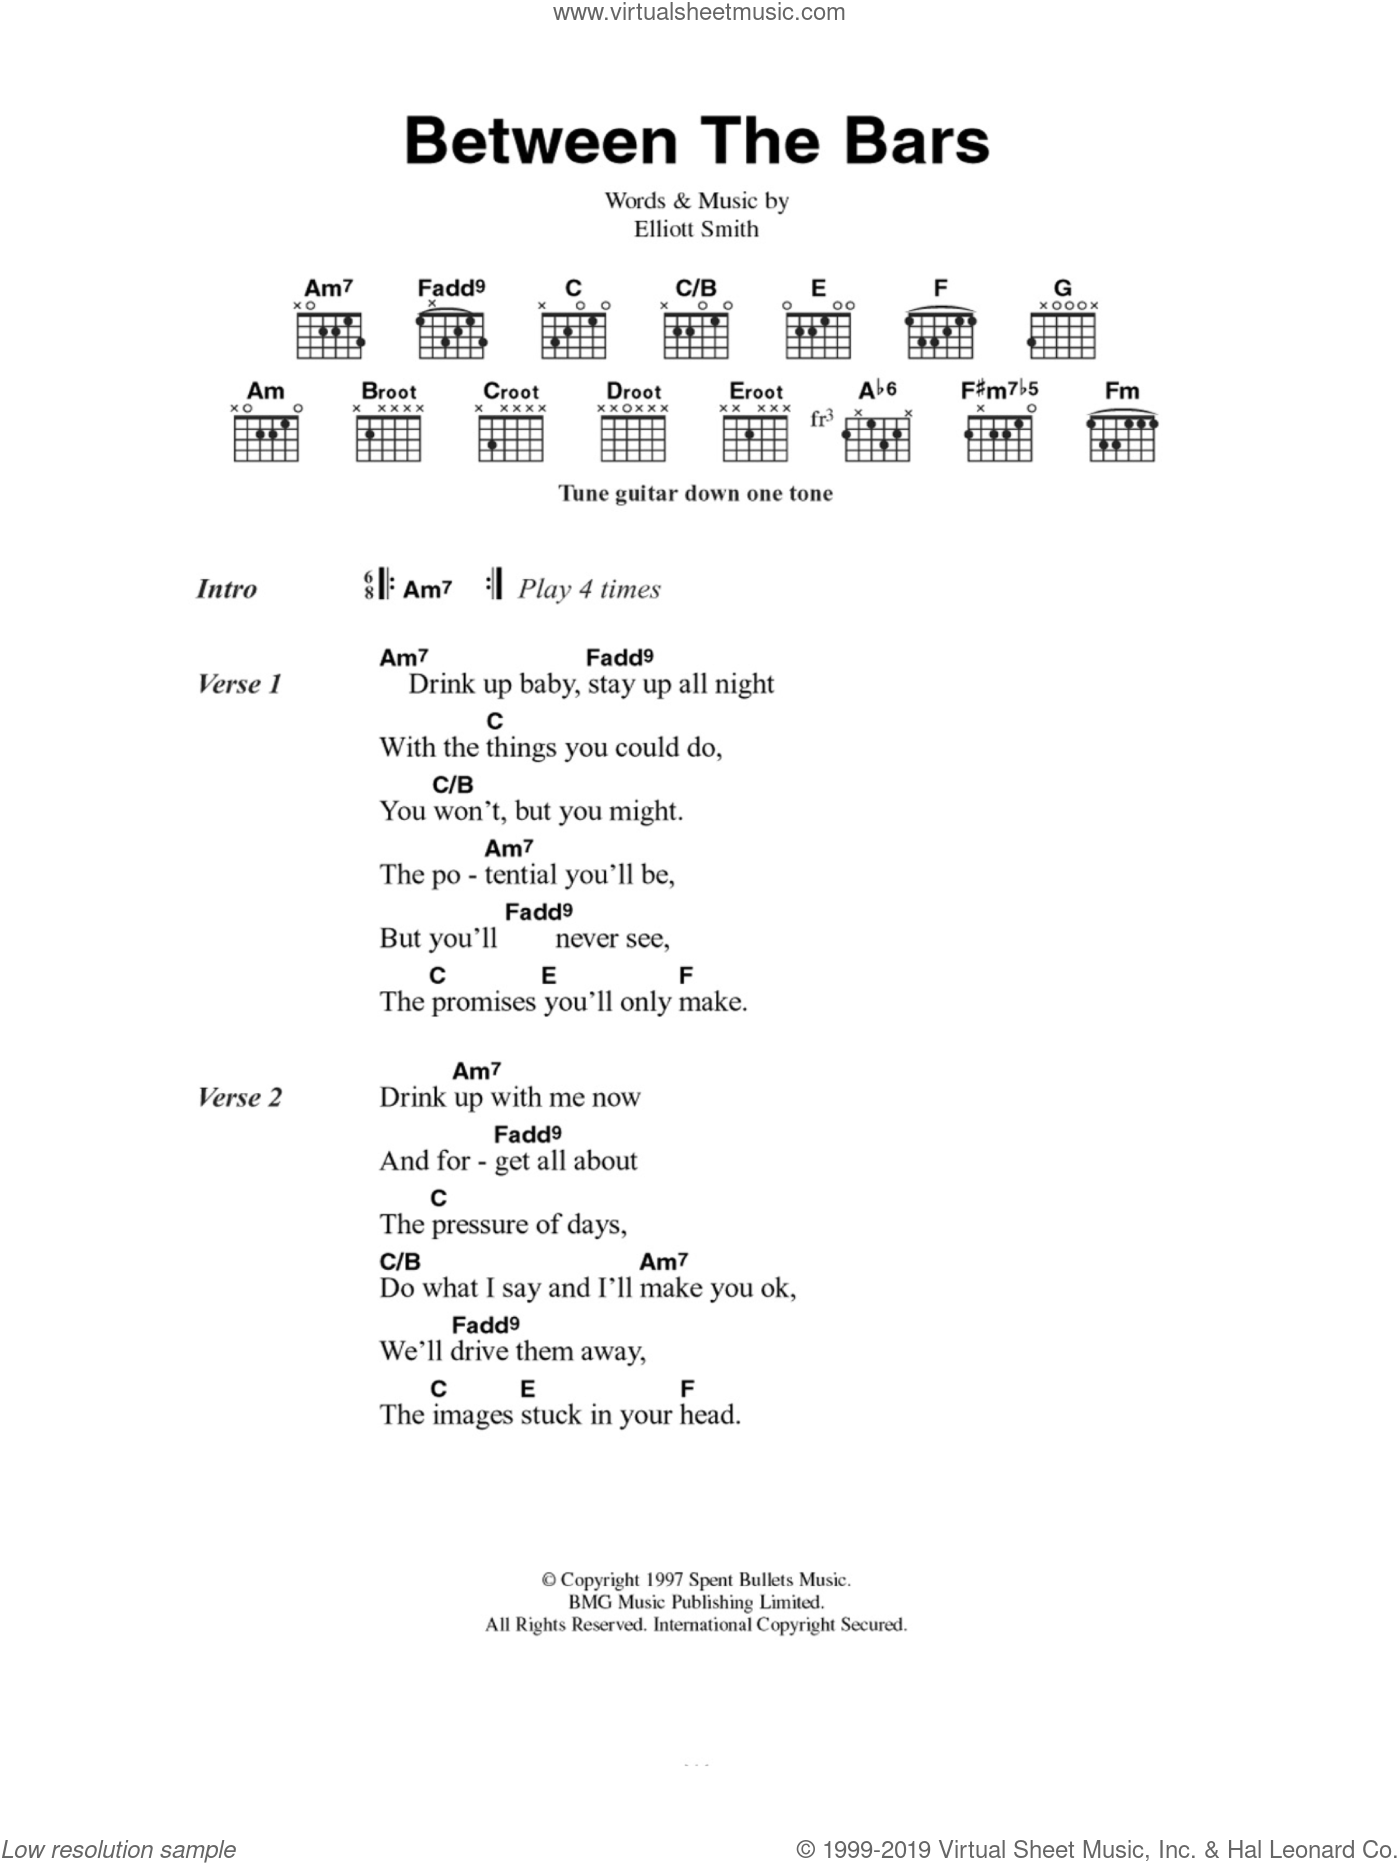 Between The Bars sheet music for guitar (chords) by Elliott Smith